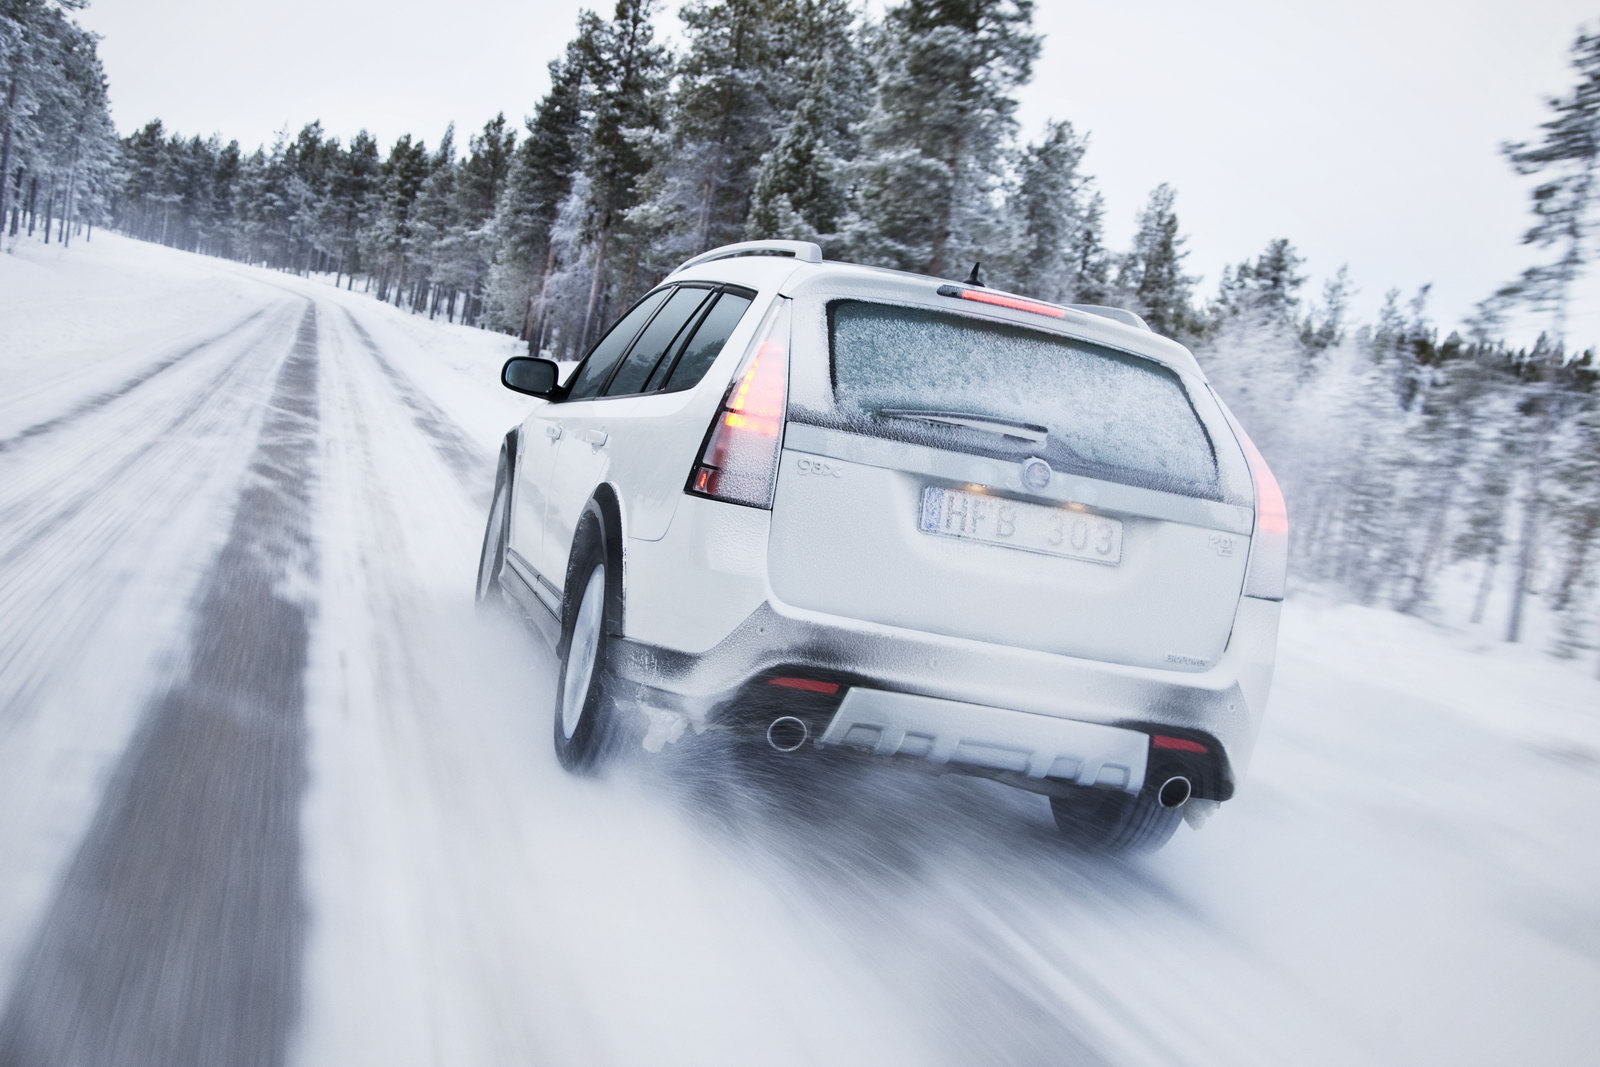 How to Drive a Car in Winter Weather